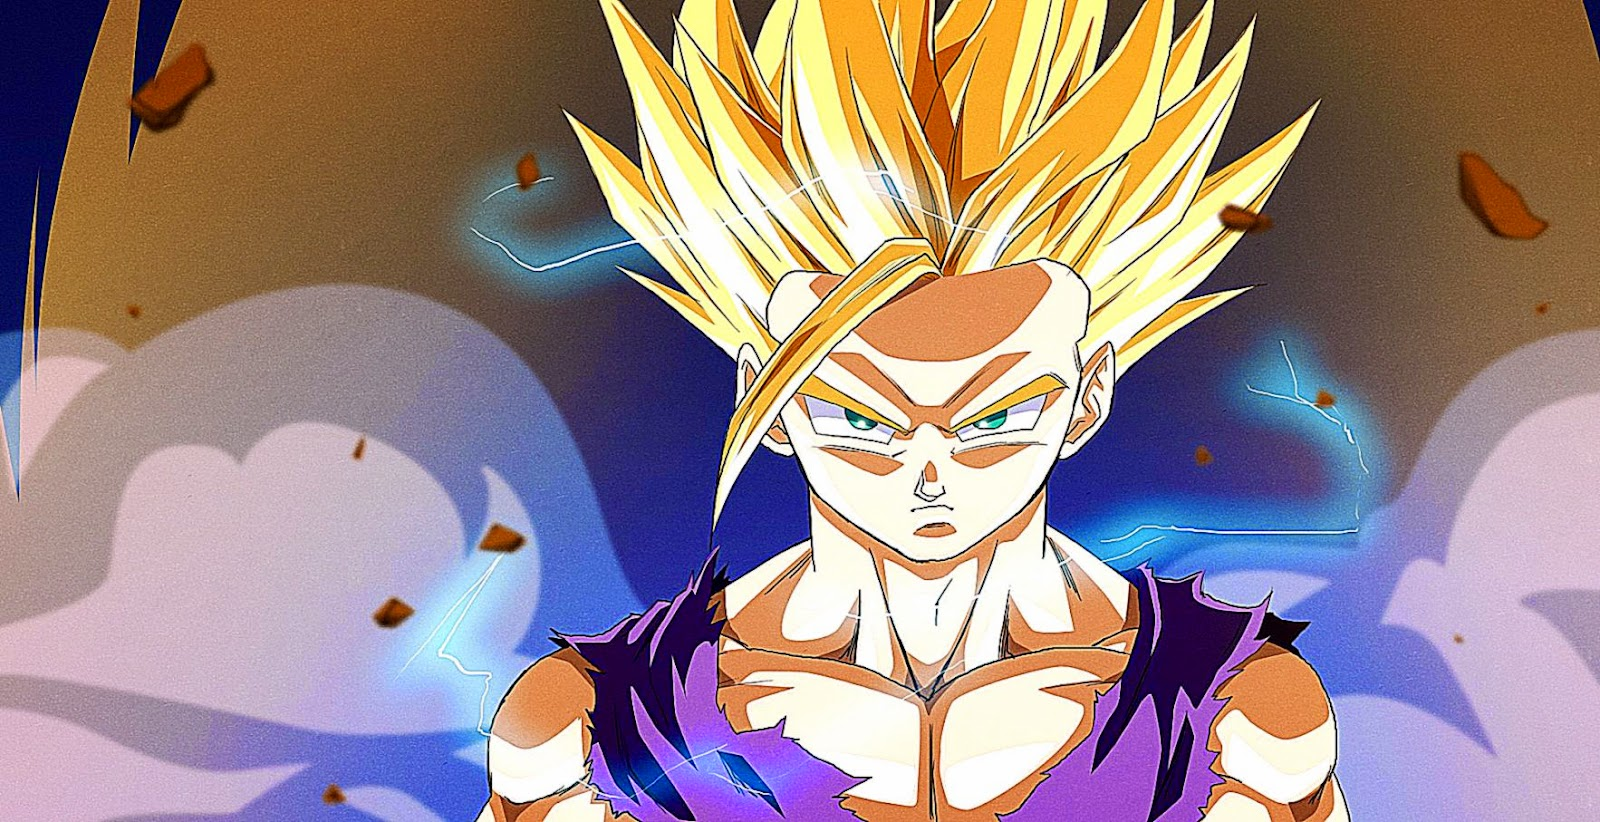 Goku Super Saiyan Hd Wallpapers | Cool HD Wallpapers